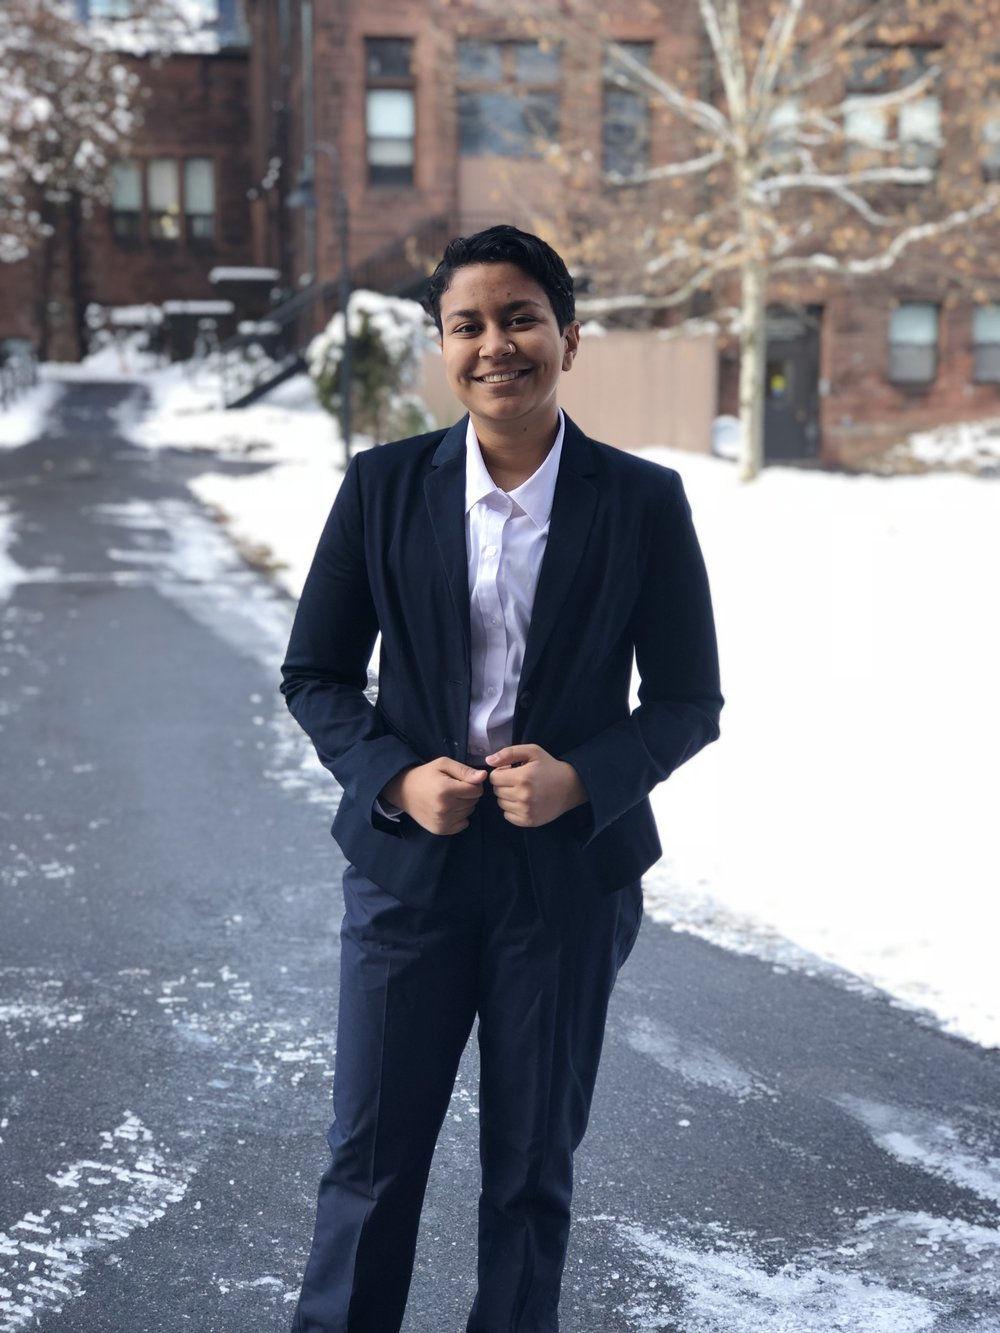 Jai Pemmaraju      | Committee Director  - Jai is a sophomore at Mount Holyoke and a double major in Spanish and History with a Pre-law track. Growing up, Harry Potter was (and still is) very dear to his heart. As a huge fan of the books and movies, Jai wanted to wield a wand and cast spells, but also embody the immense bravery he saw in the characters. Jai hopes this committee will serve as a magical experience... delegates can add twists and turns to their hearts' desire and ultimately decide the fate of the Wizarding World through diplomacy and deceit. After all, what is Harry Potter without mischief?   Email:    pemma22e@mtholyoke.edu